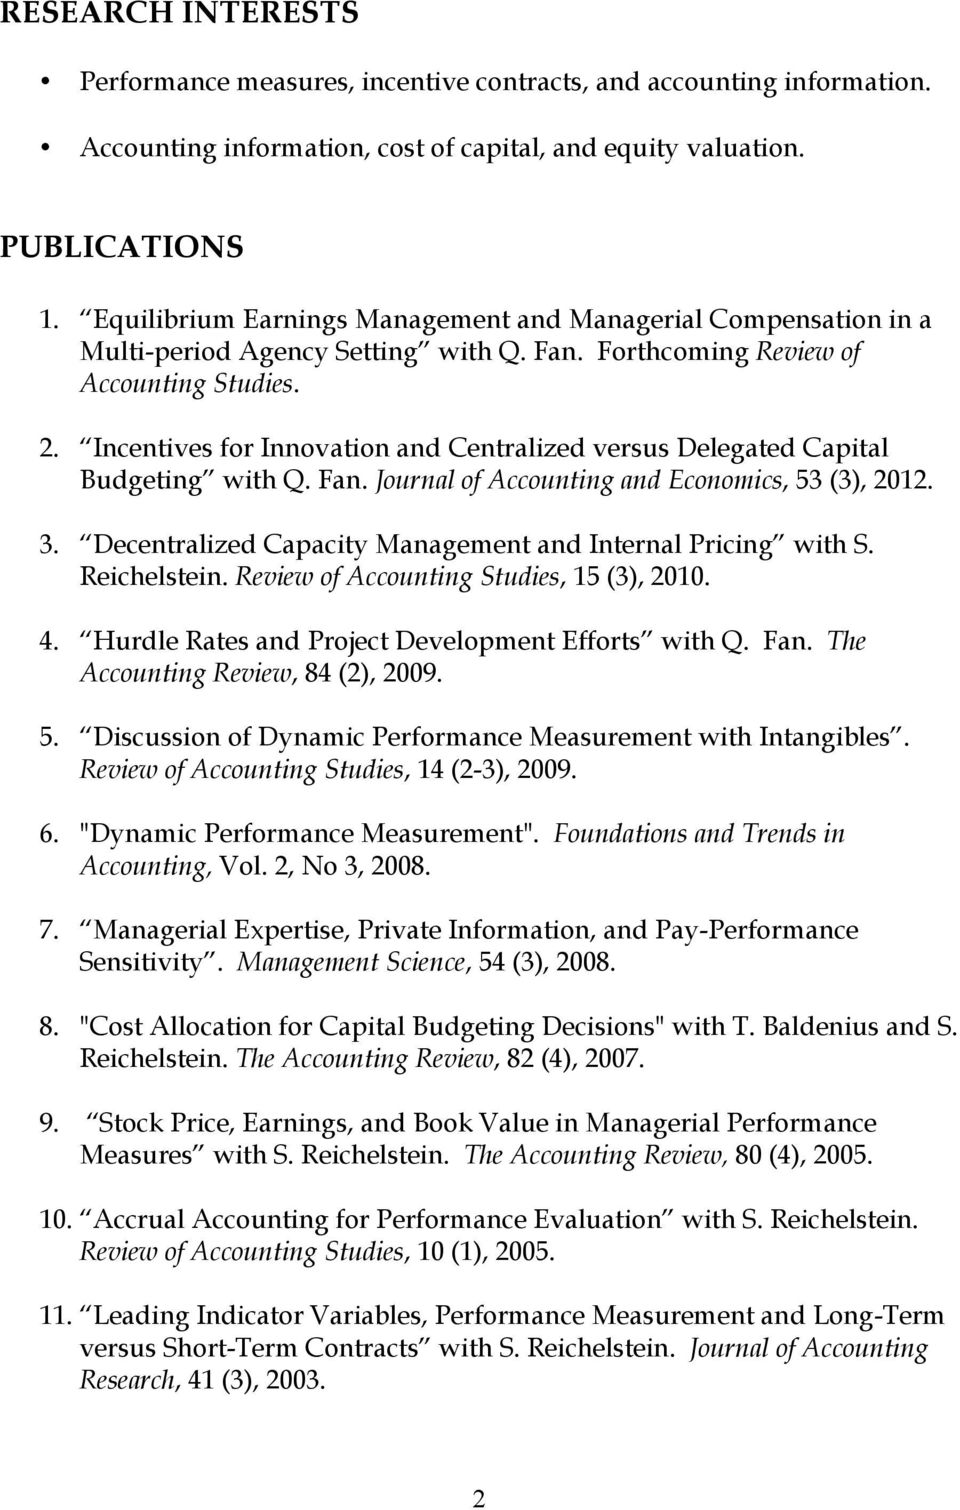 Incentives for Innovation and Centralized versus Delegated Capital Budgeting with Q. Fan. Journal of Accounting and Economics, 53 (3), 2012. 3.